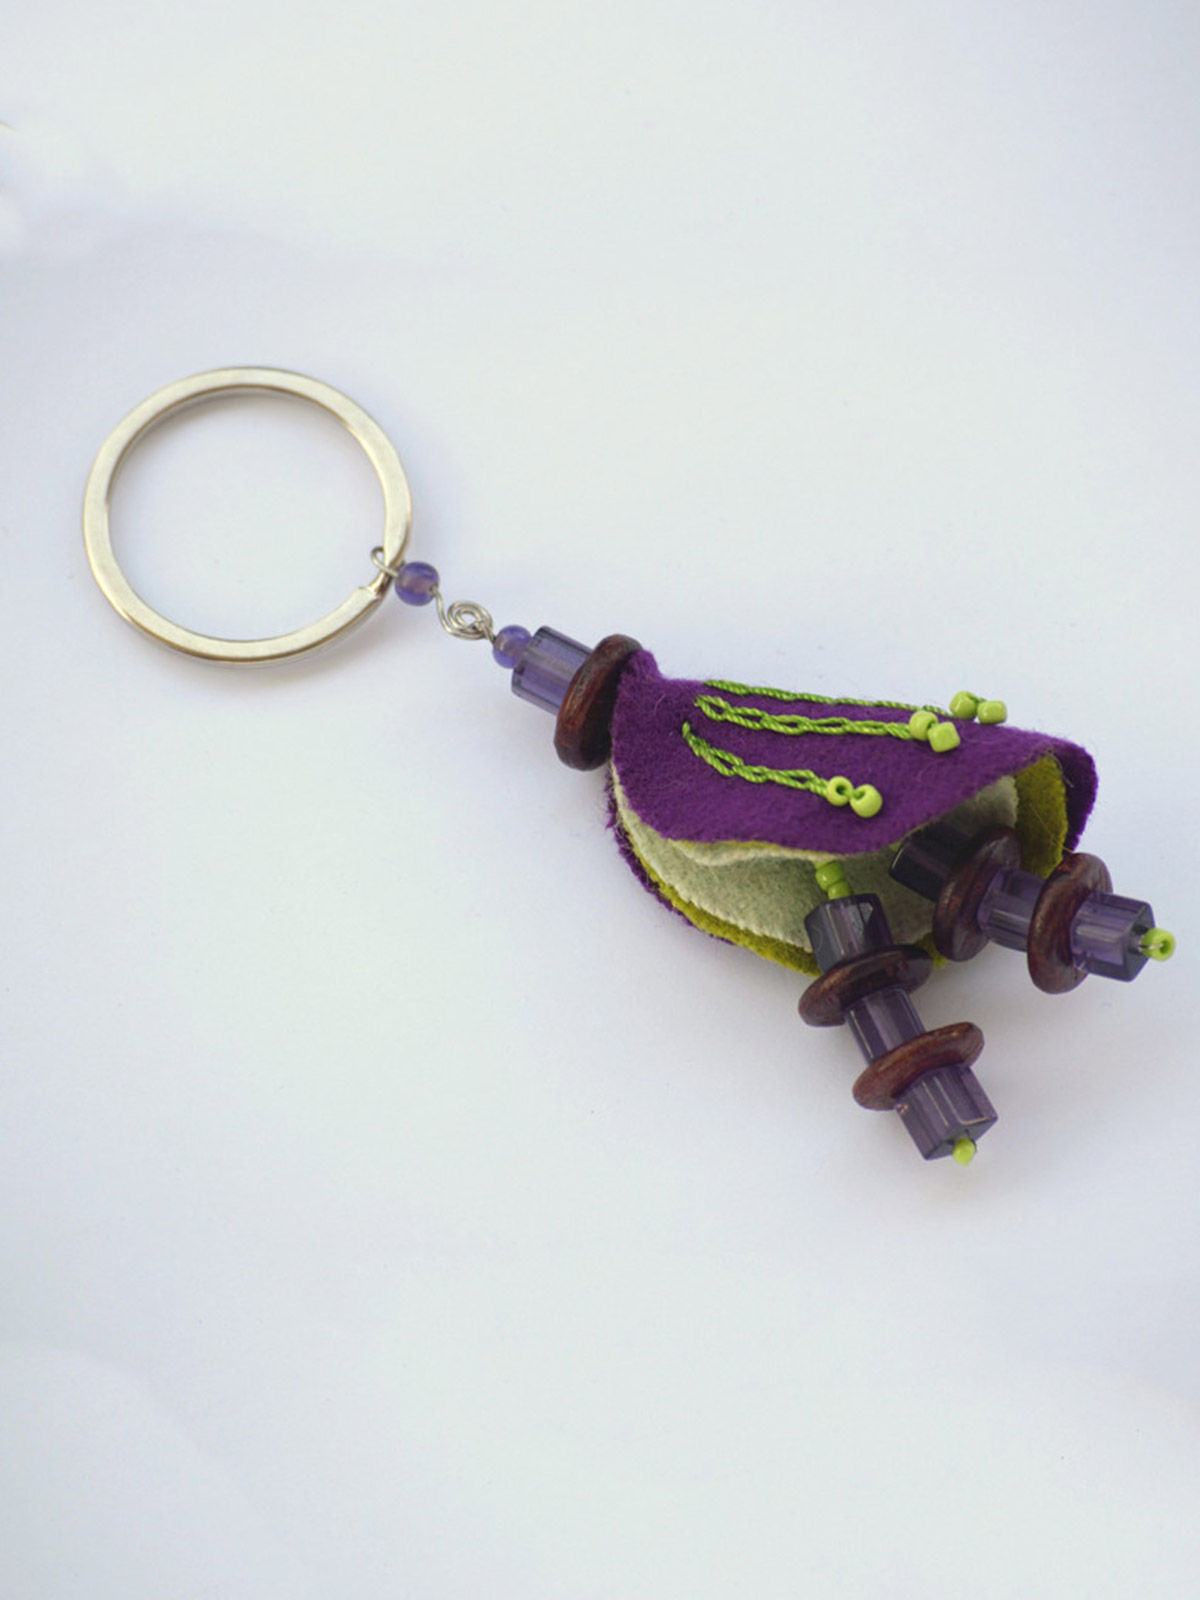 Chrysalis Keychain - Purple